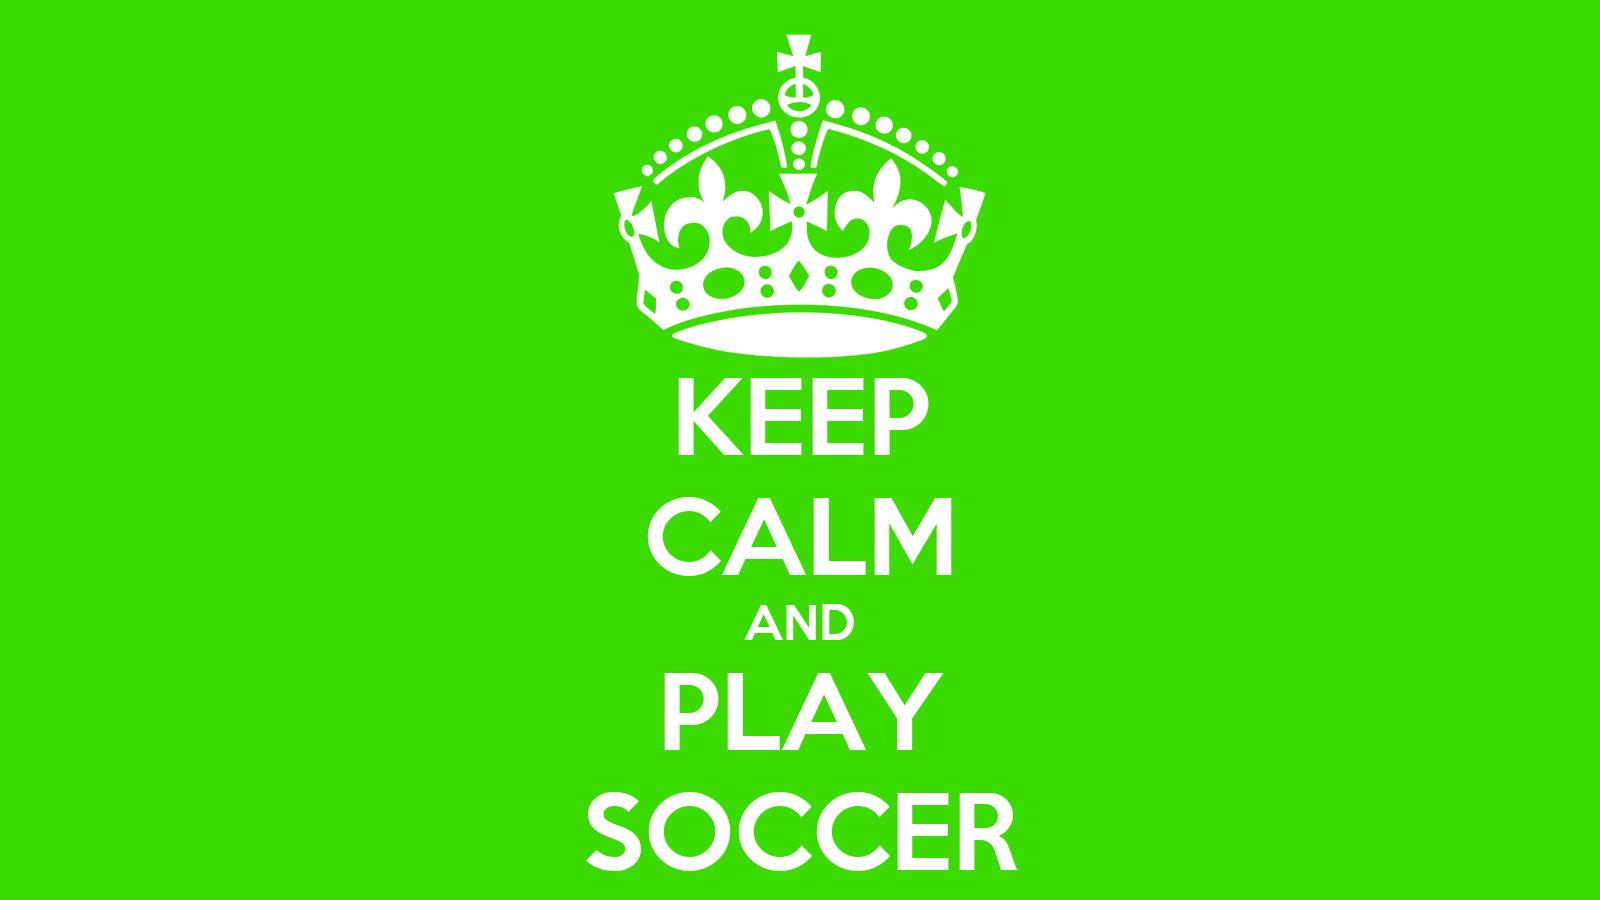 KEEP CALM AND PLAY SOCCER Poster | vdy | Keep Calm-o-Matic